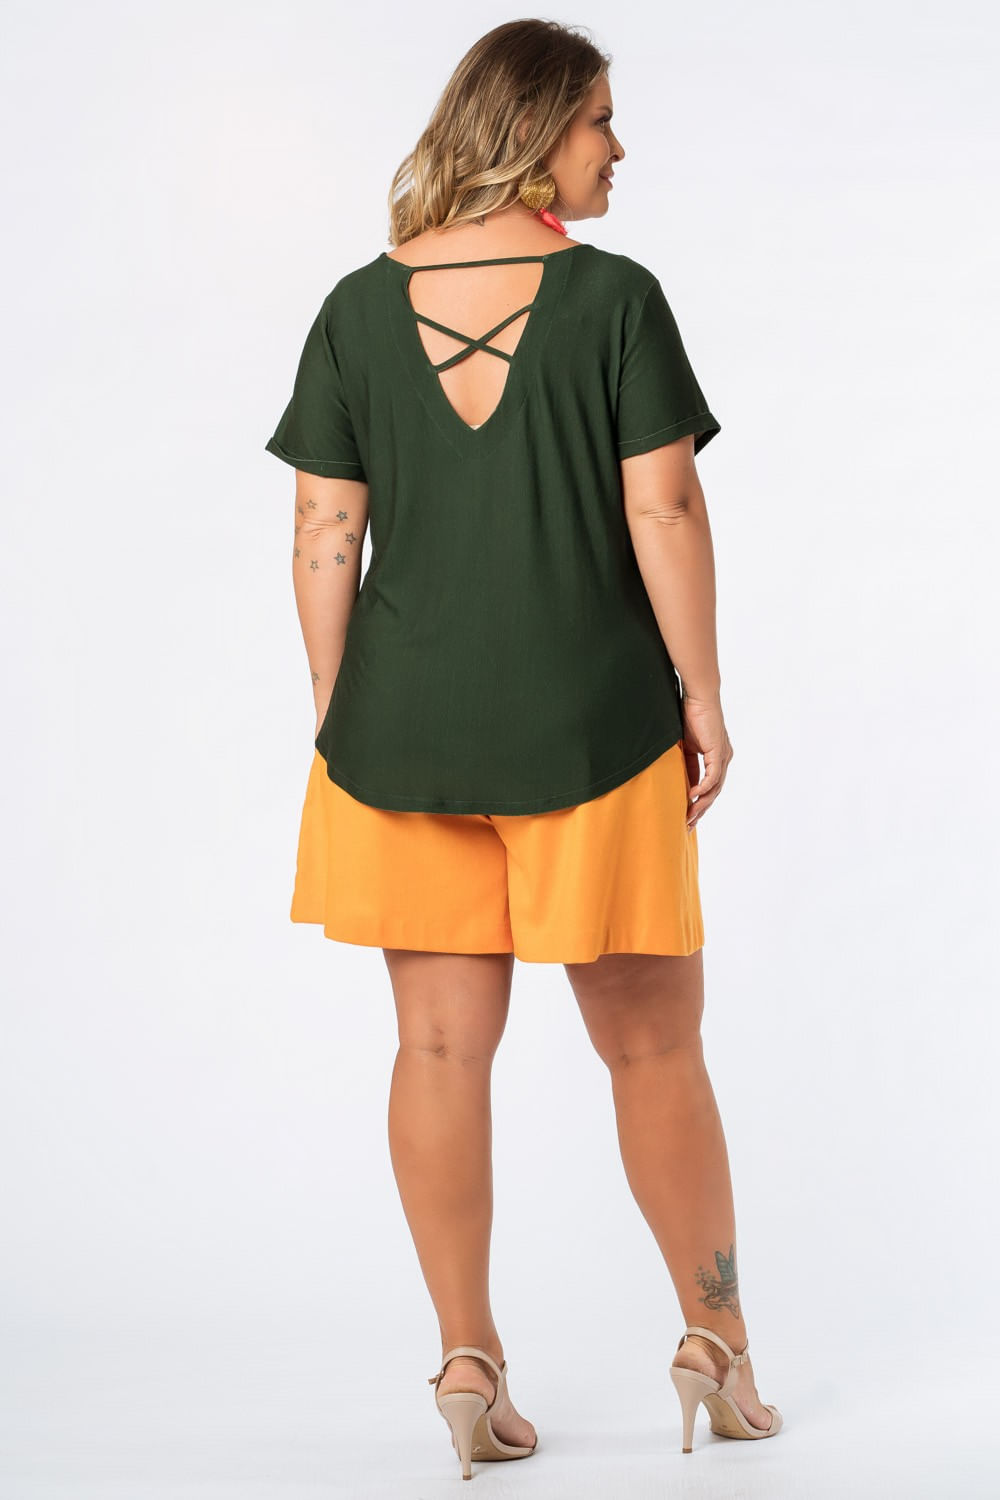 t_shirt_estampada_onca_plus_size_verde_22292_2_20201208153715